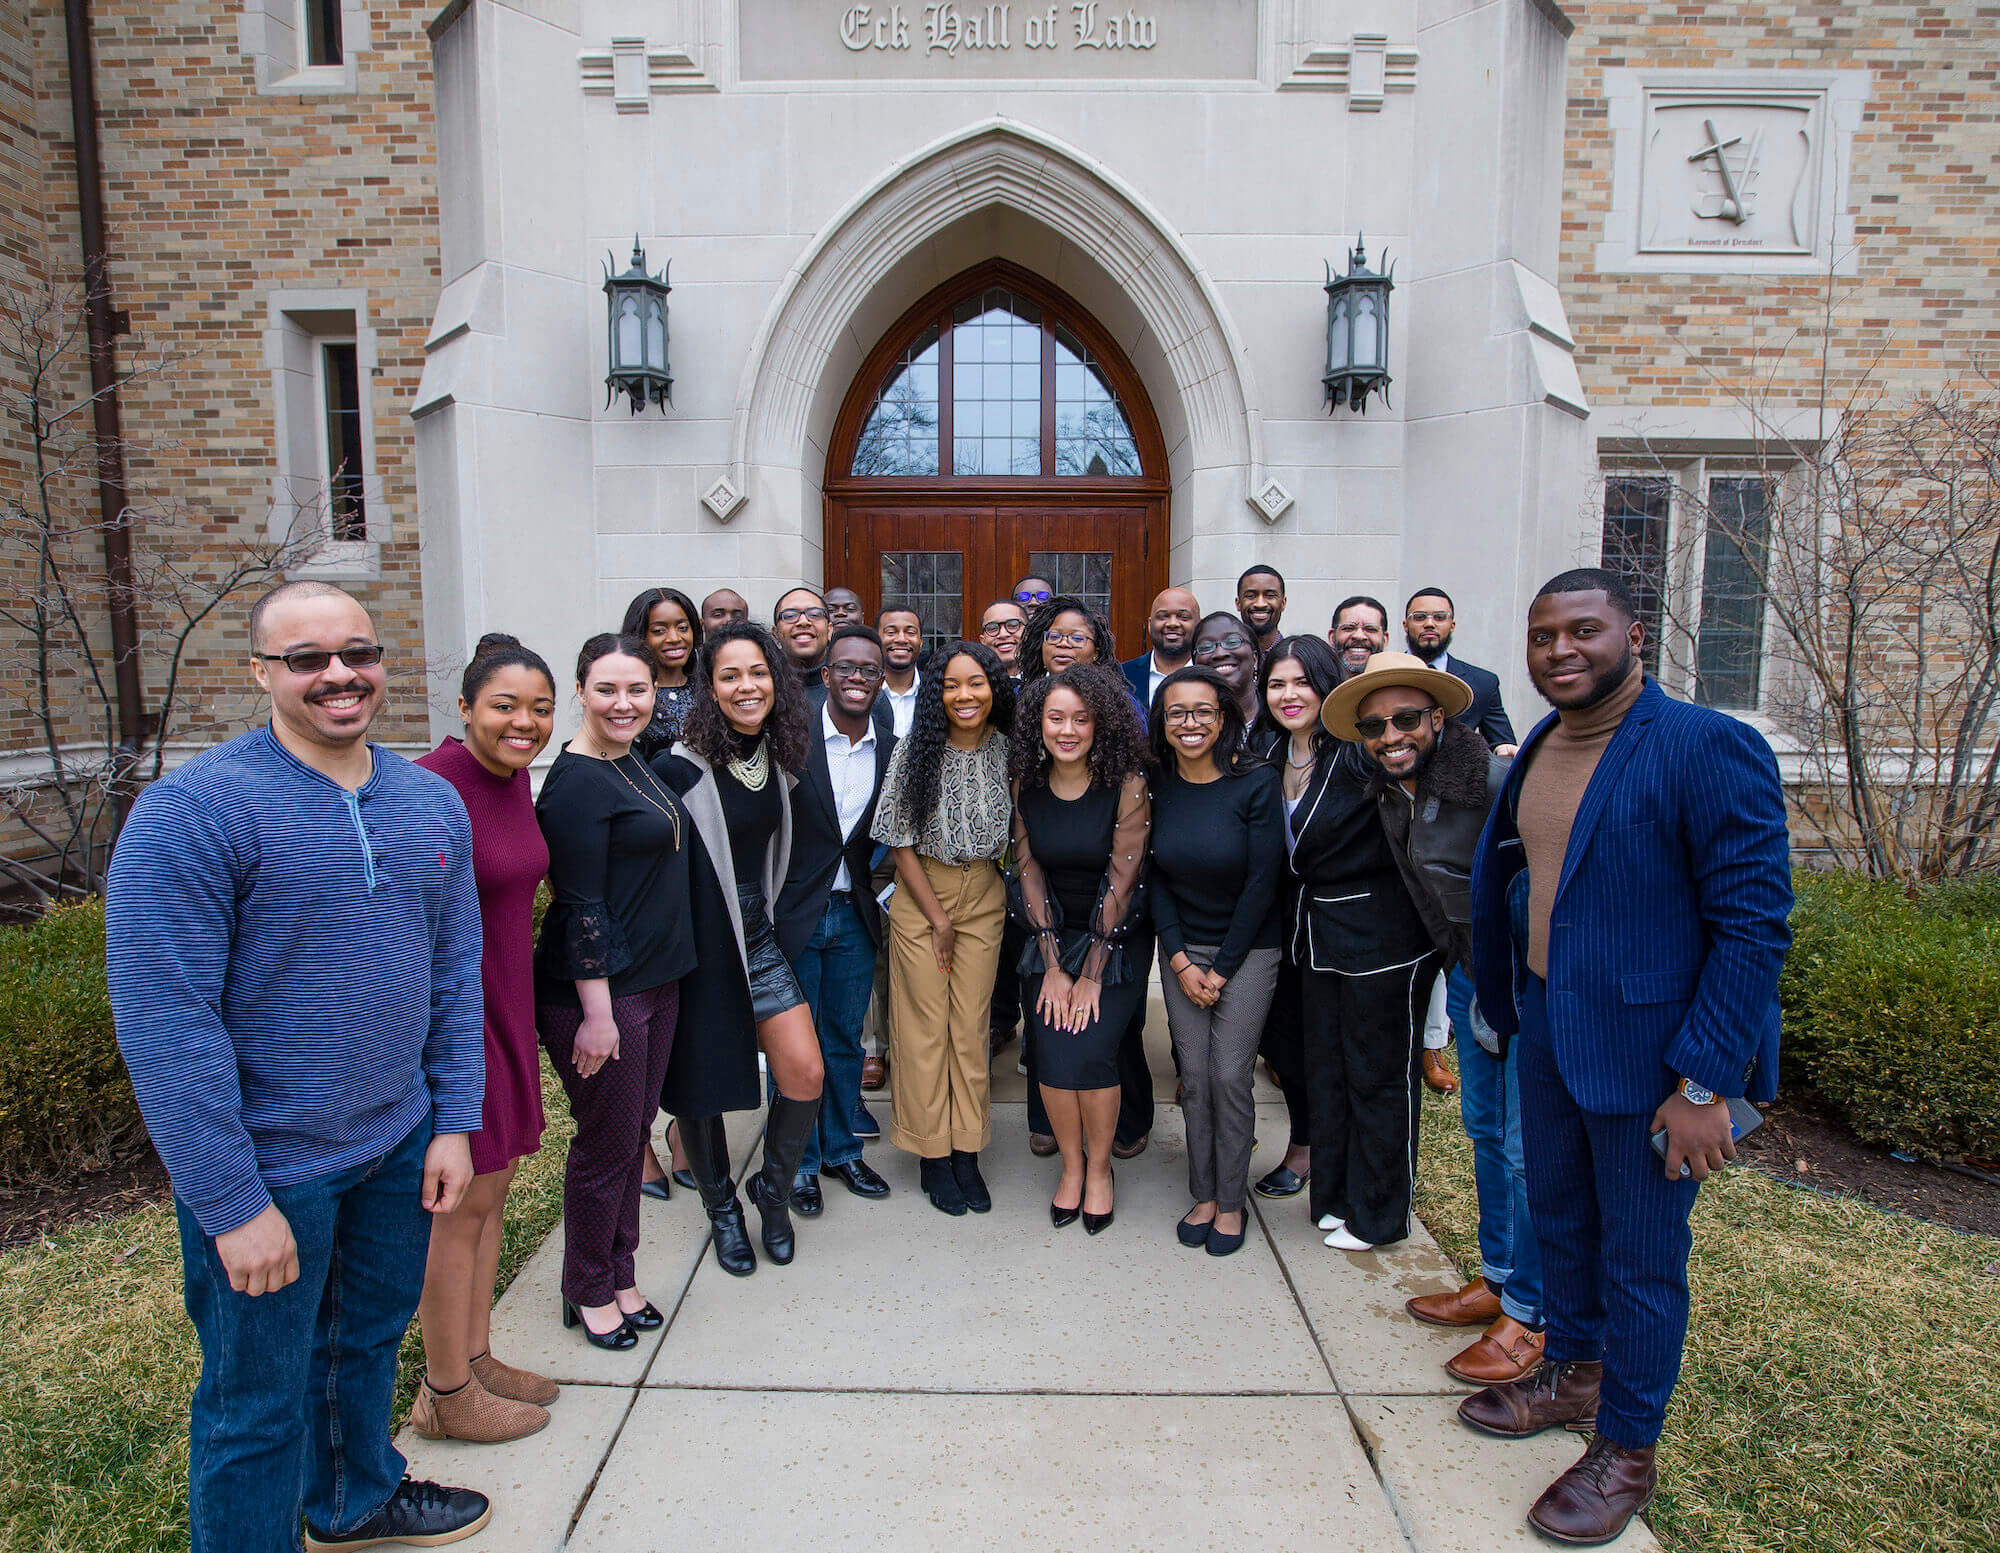 Nd blsa brunch Group Photo